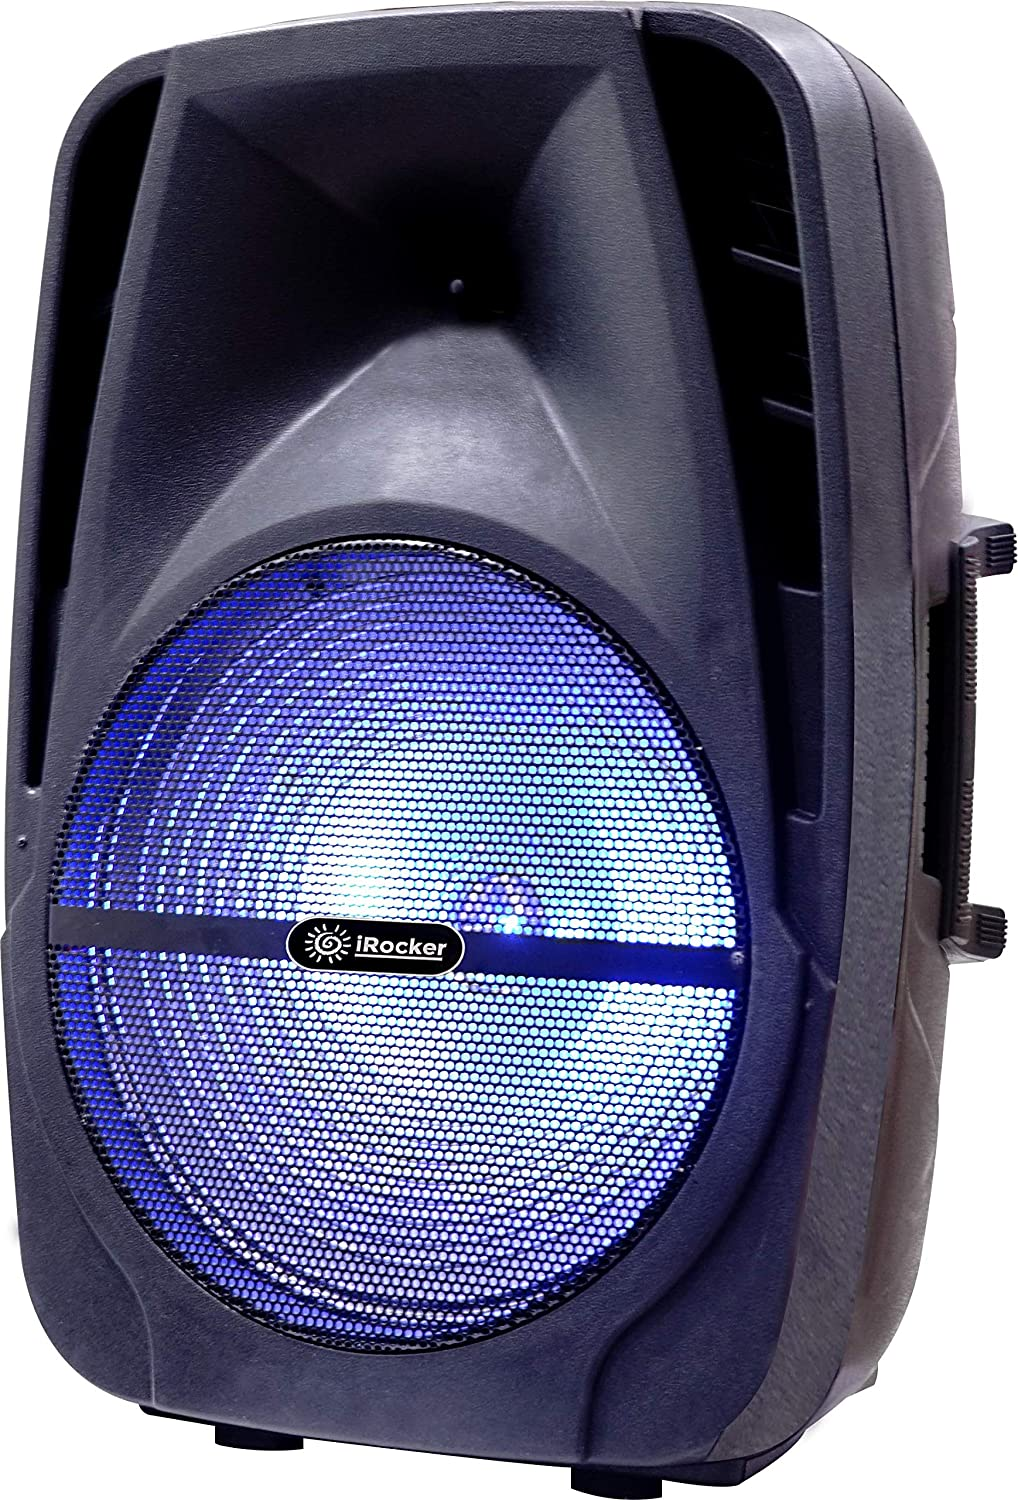 iRocker 15 inch PA System with Bluetooth Wireless Pairing - XS3000